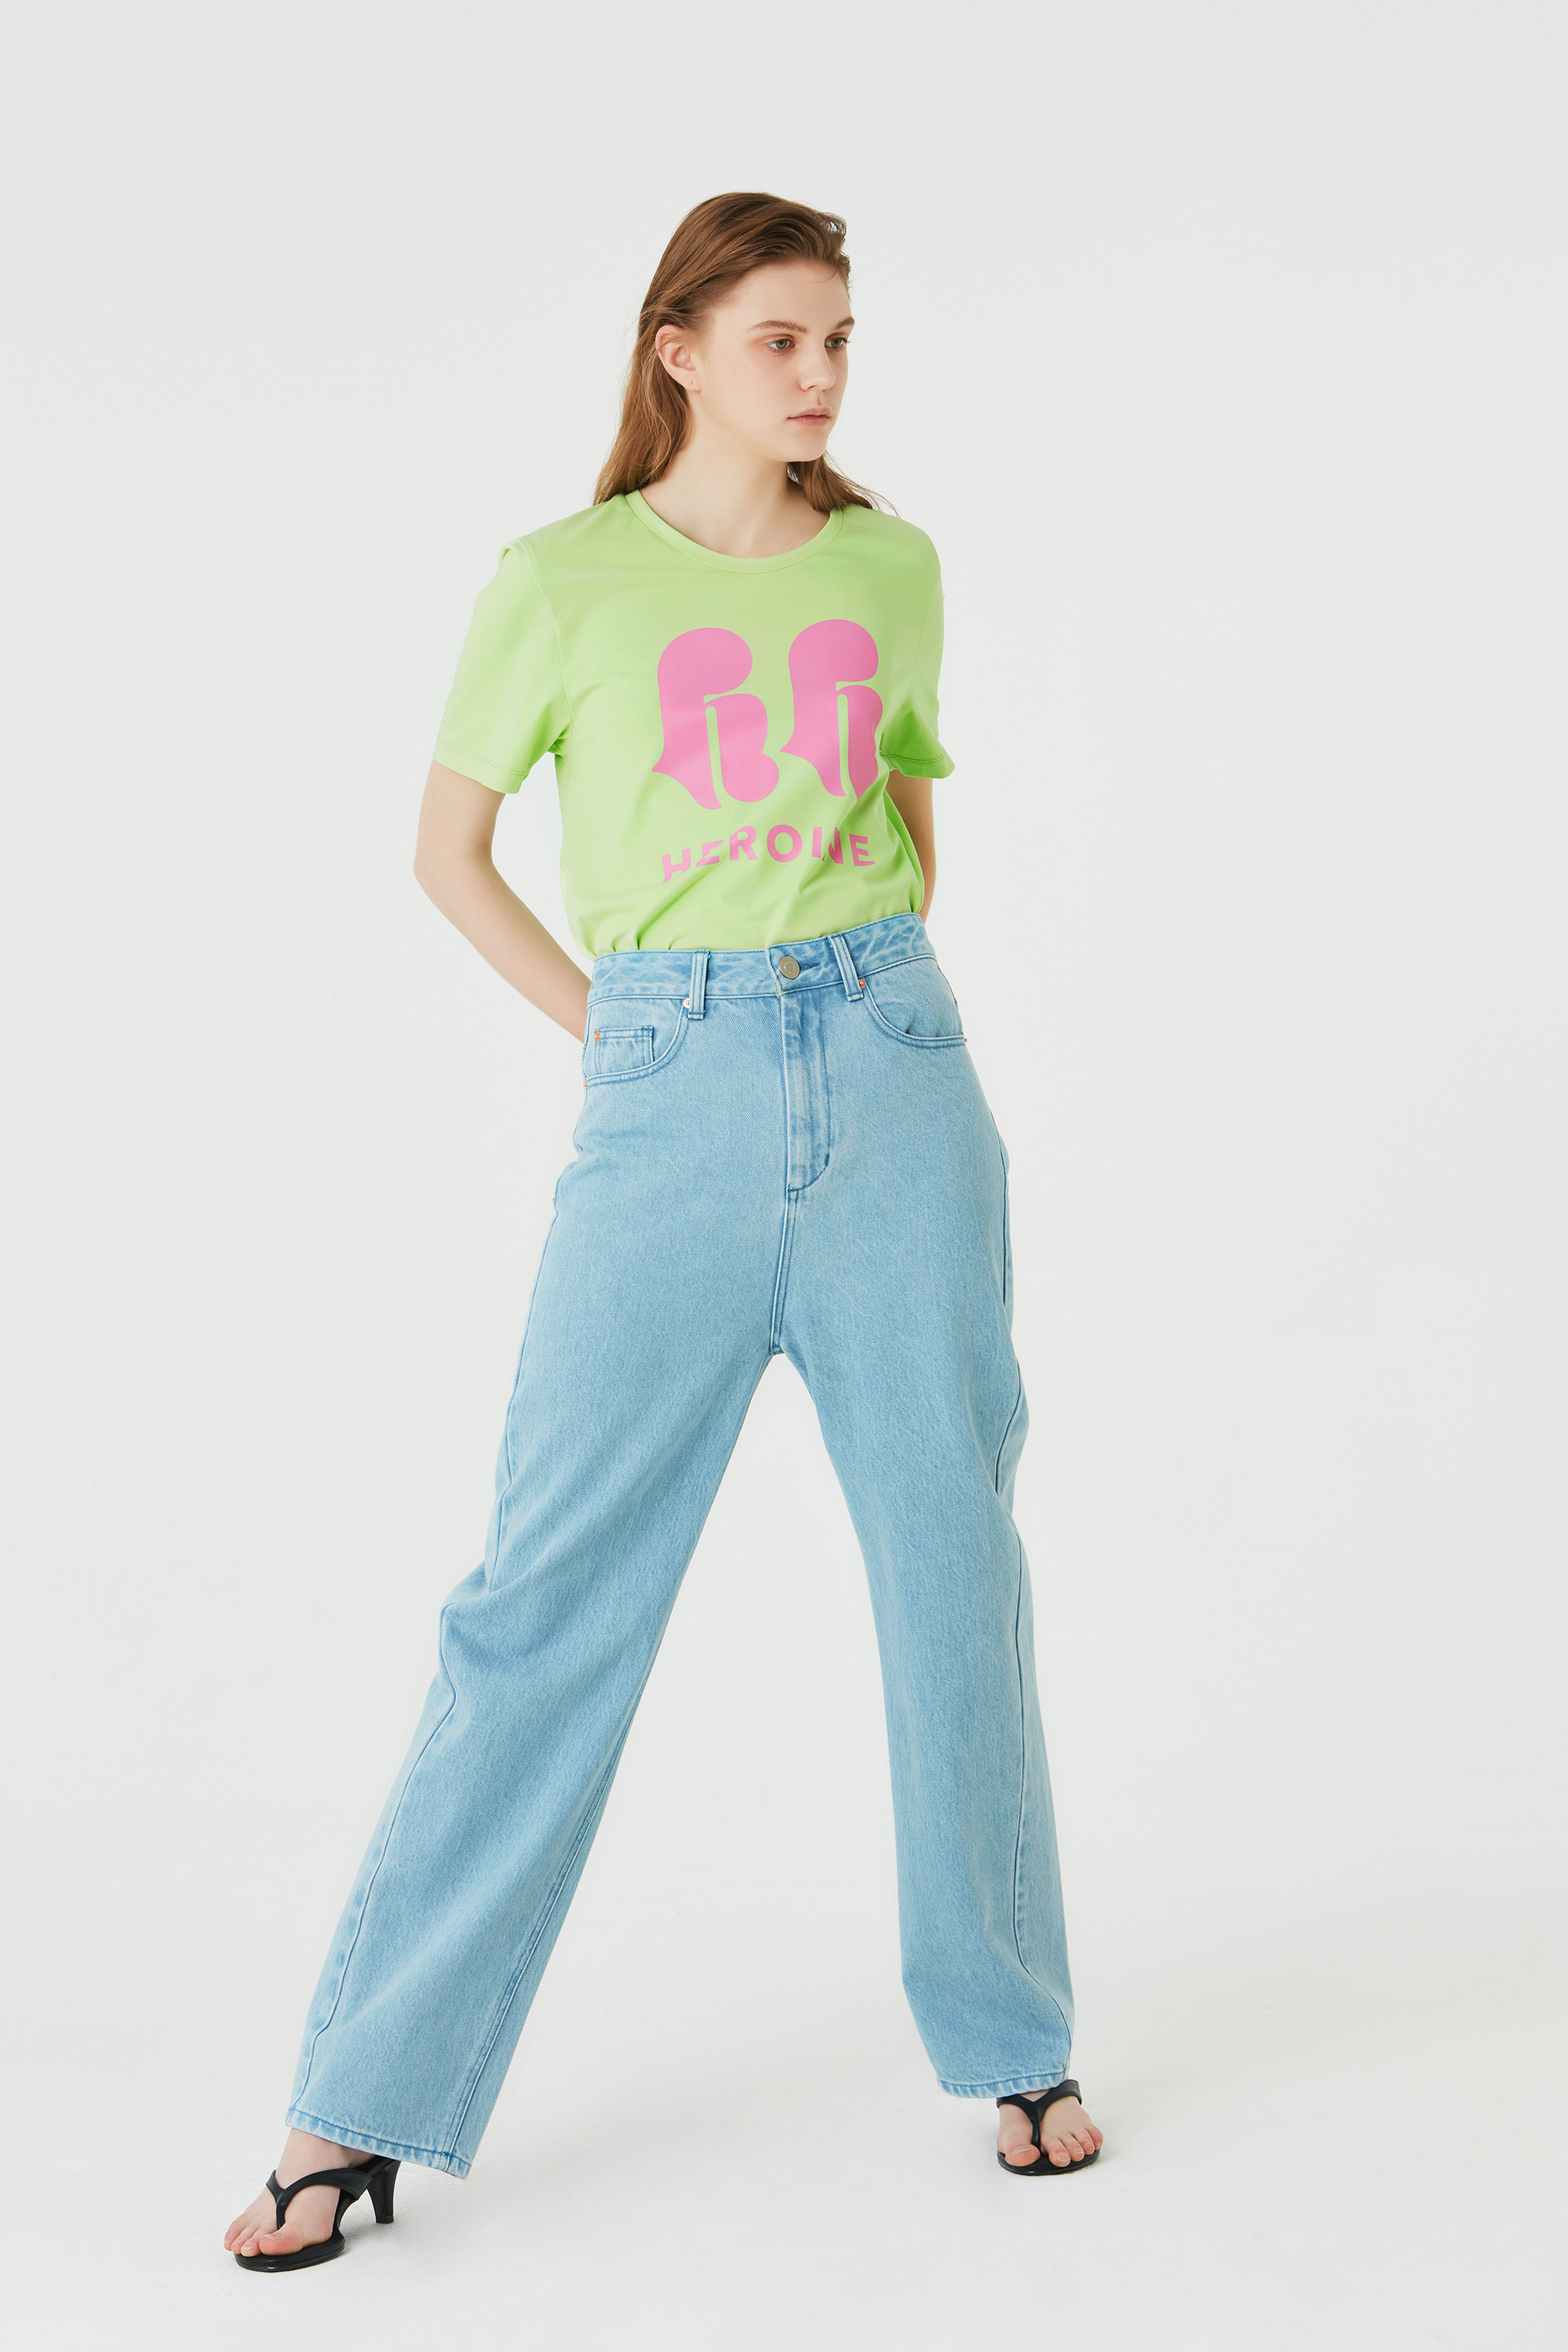 SKY 90S ENGINEERED JEANS (FABRIC FROM ITALY)